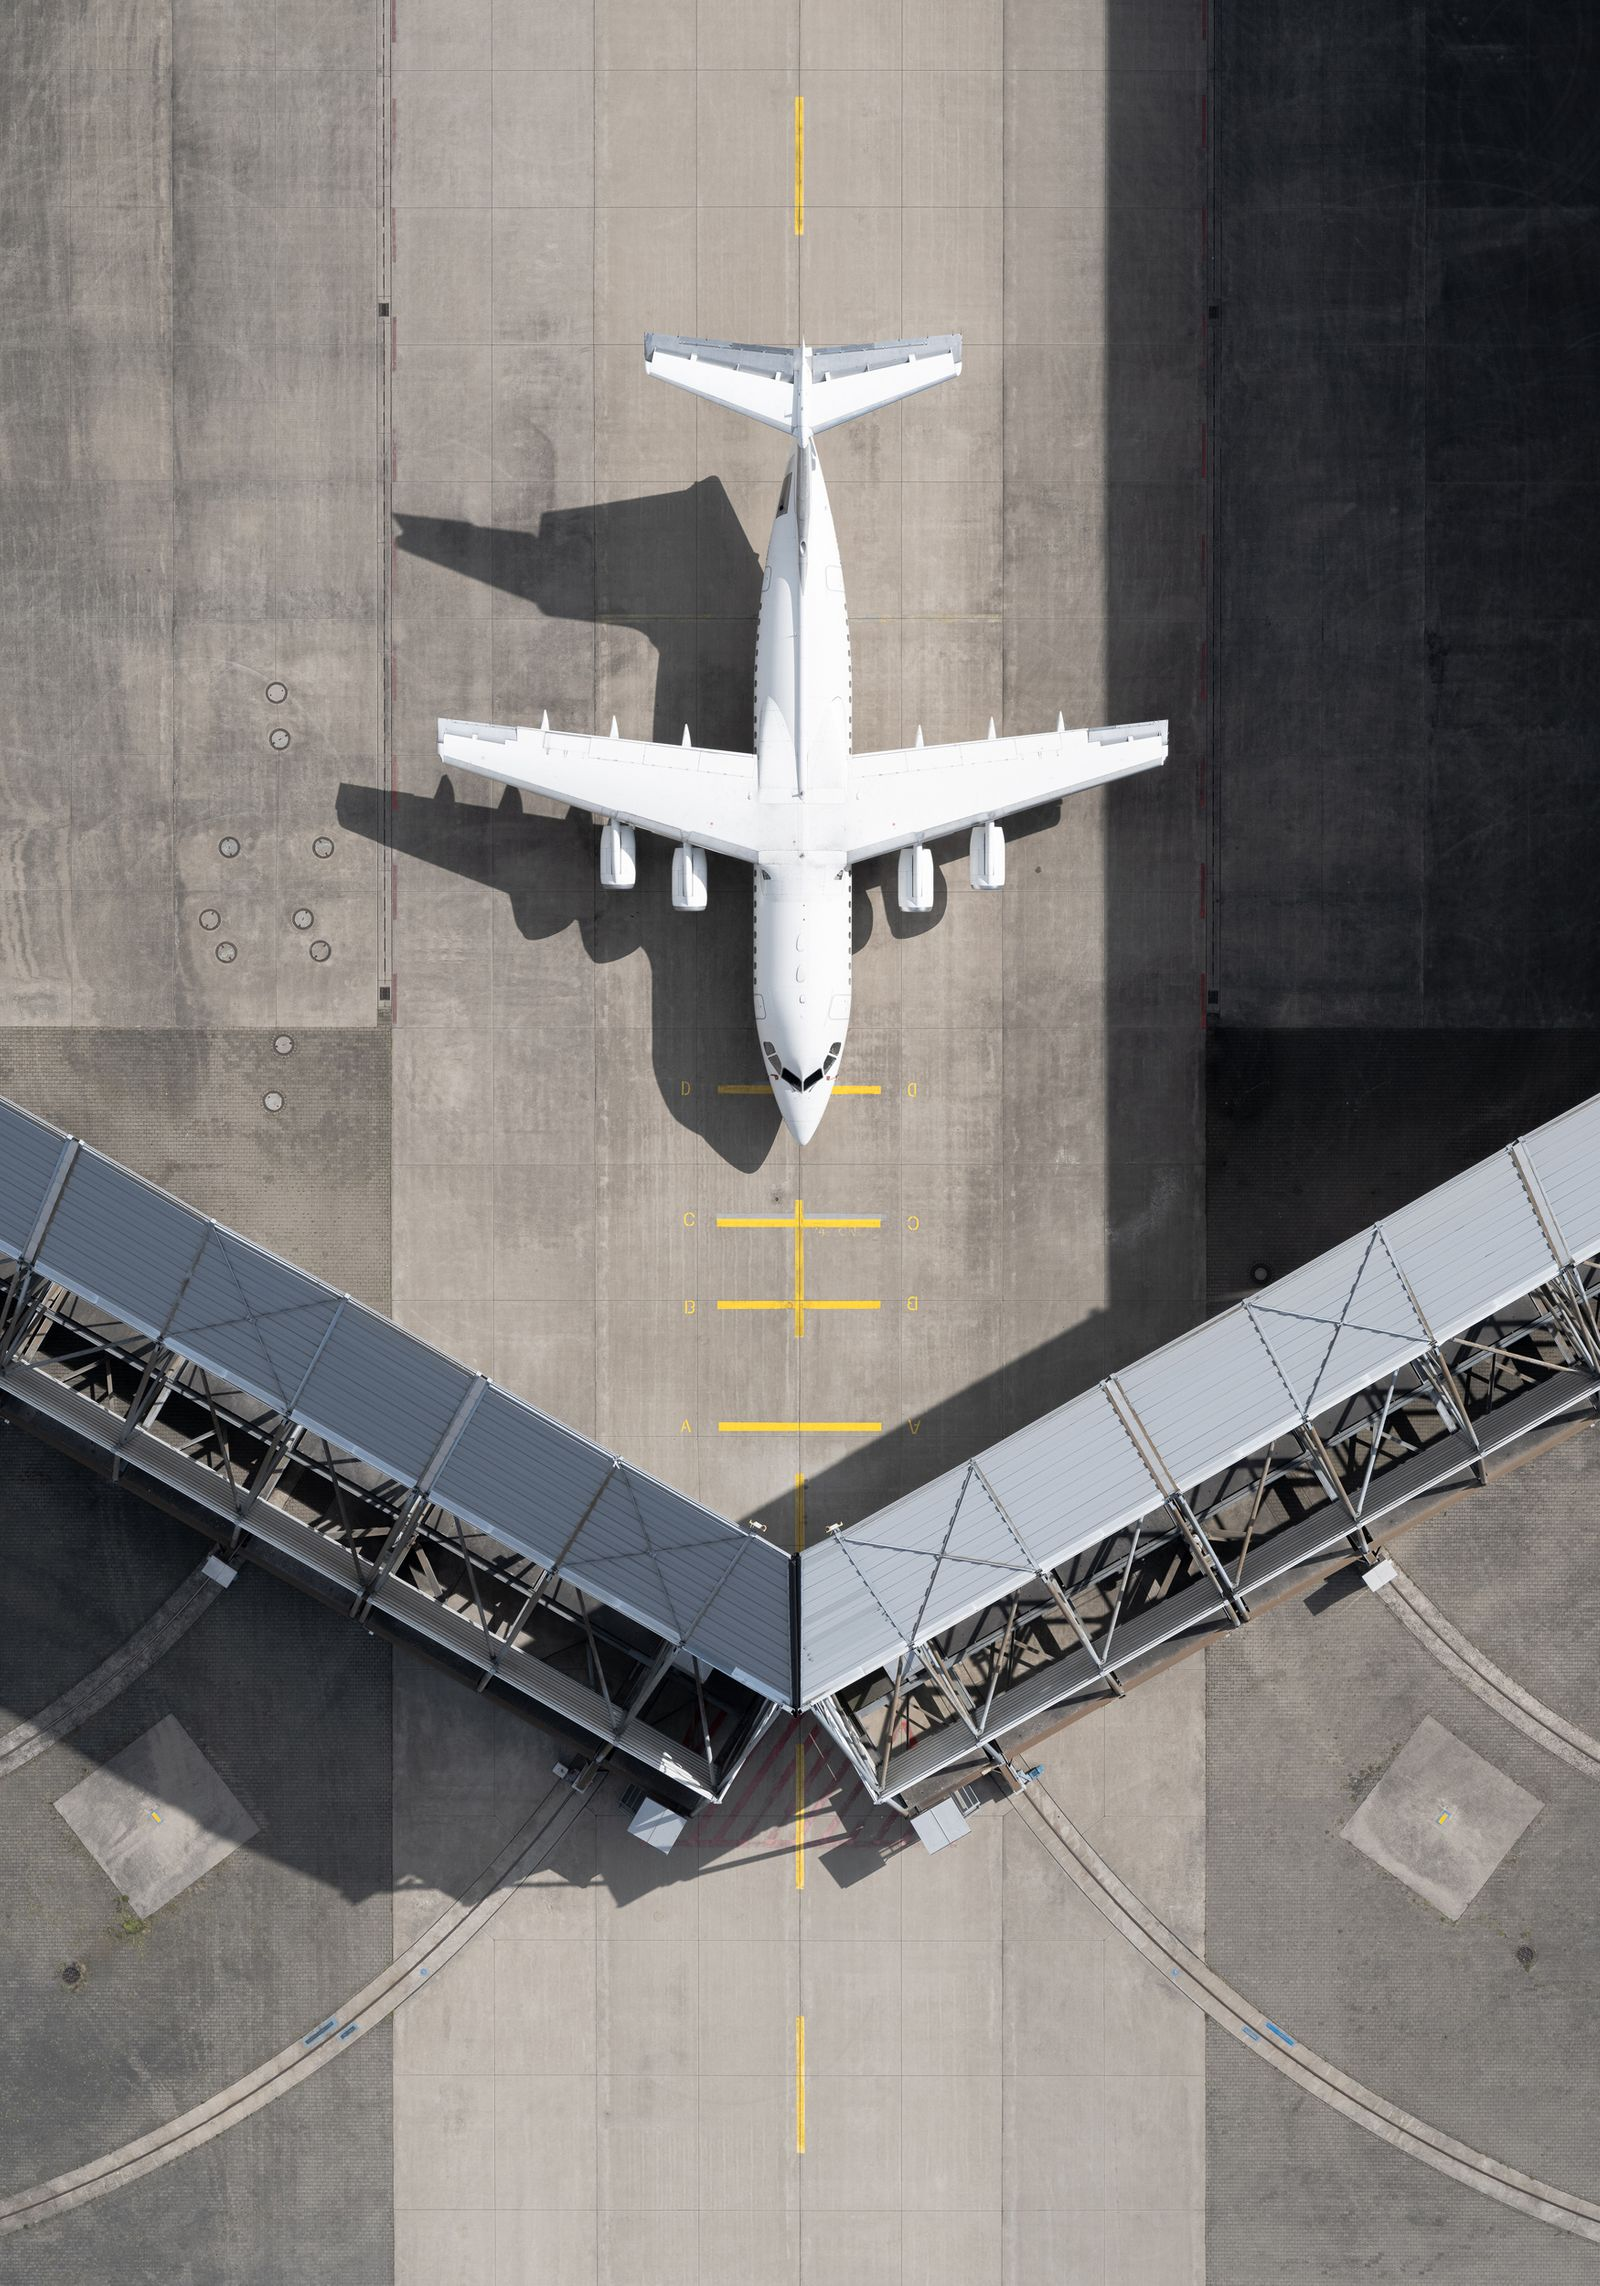 Buch/ Tom Hegen: Aerial Observations on Airports